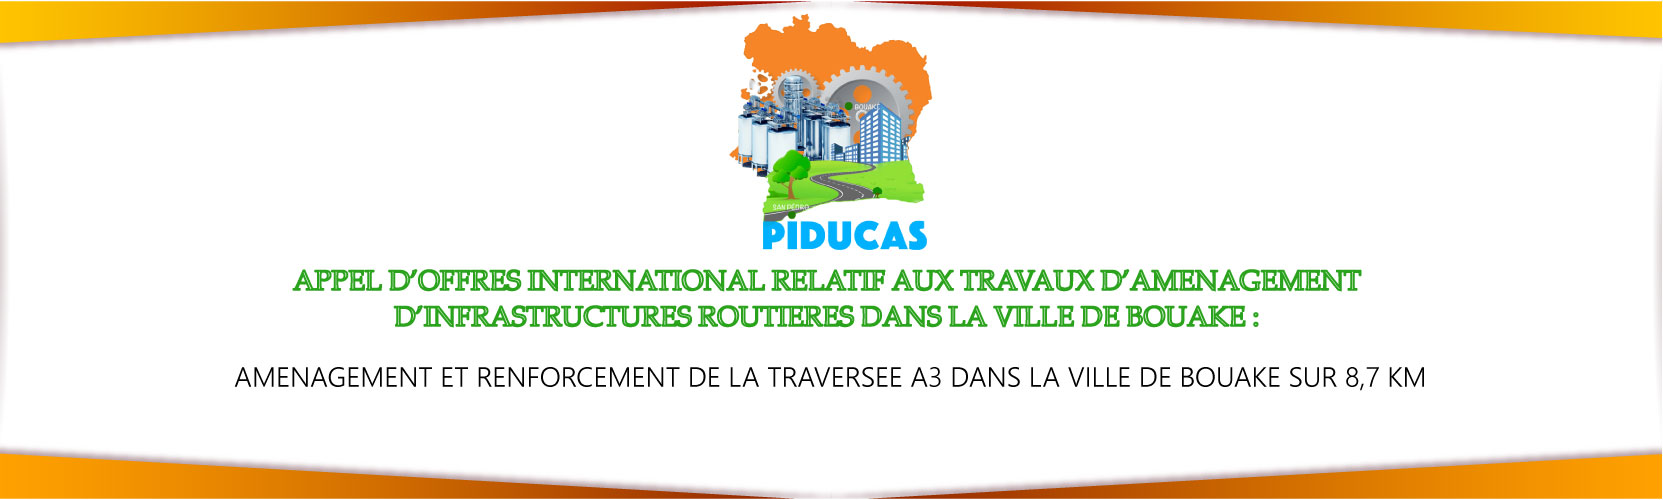 PIDUCAS-APPEL-OFFRES-INTERNATIONAL-BOUAKE-2